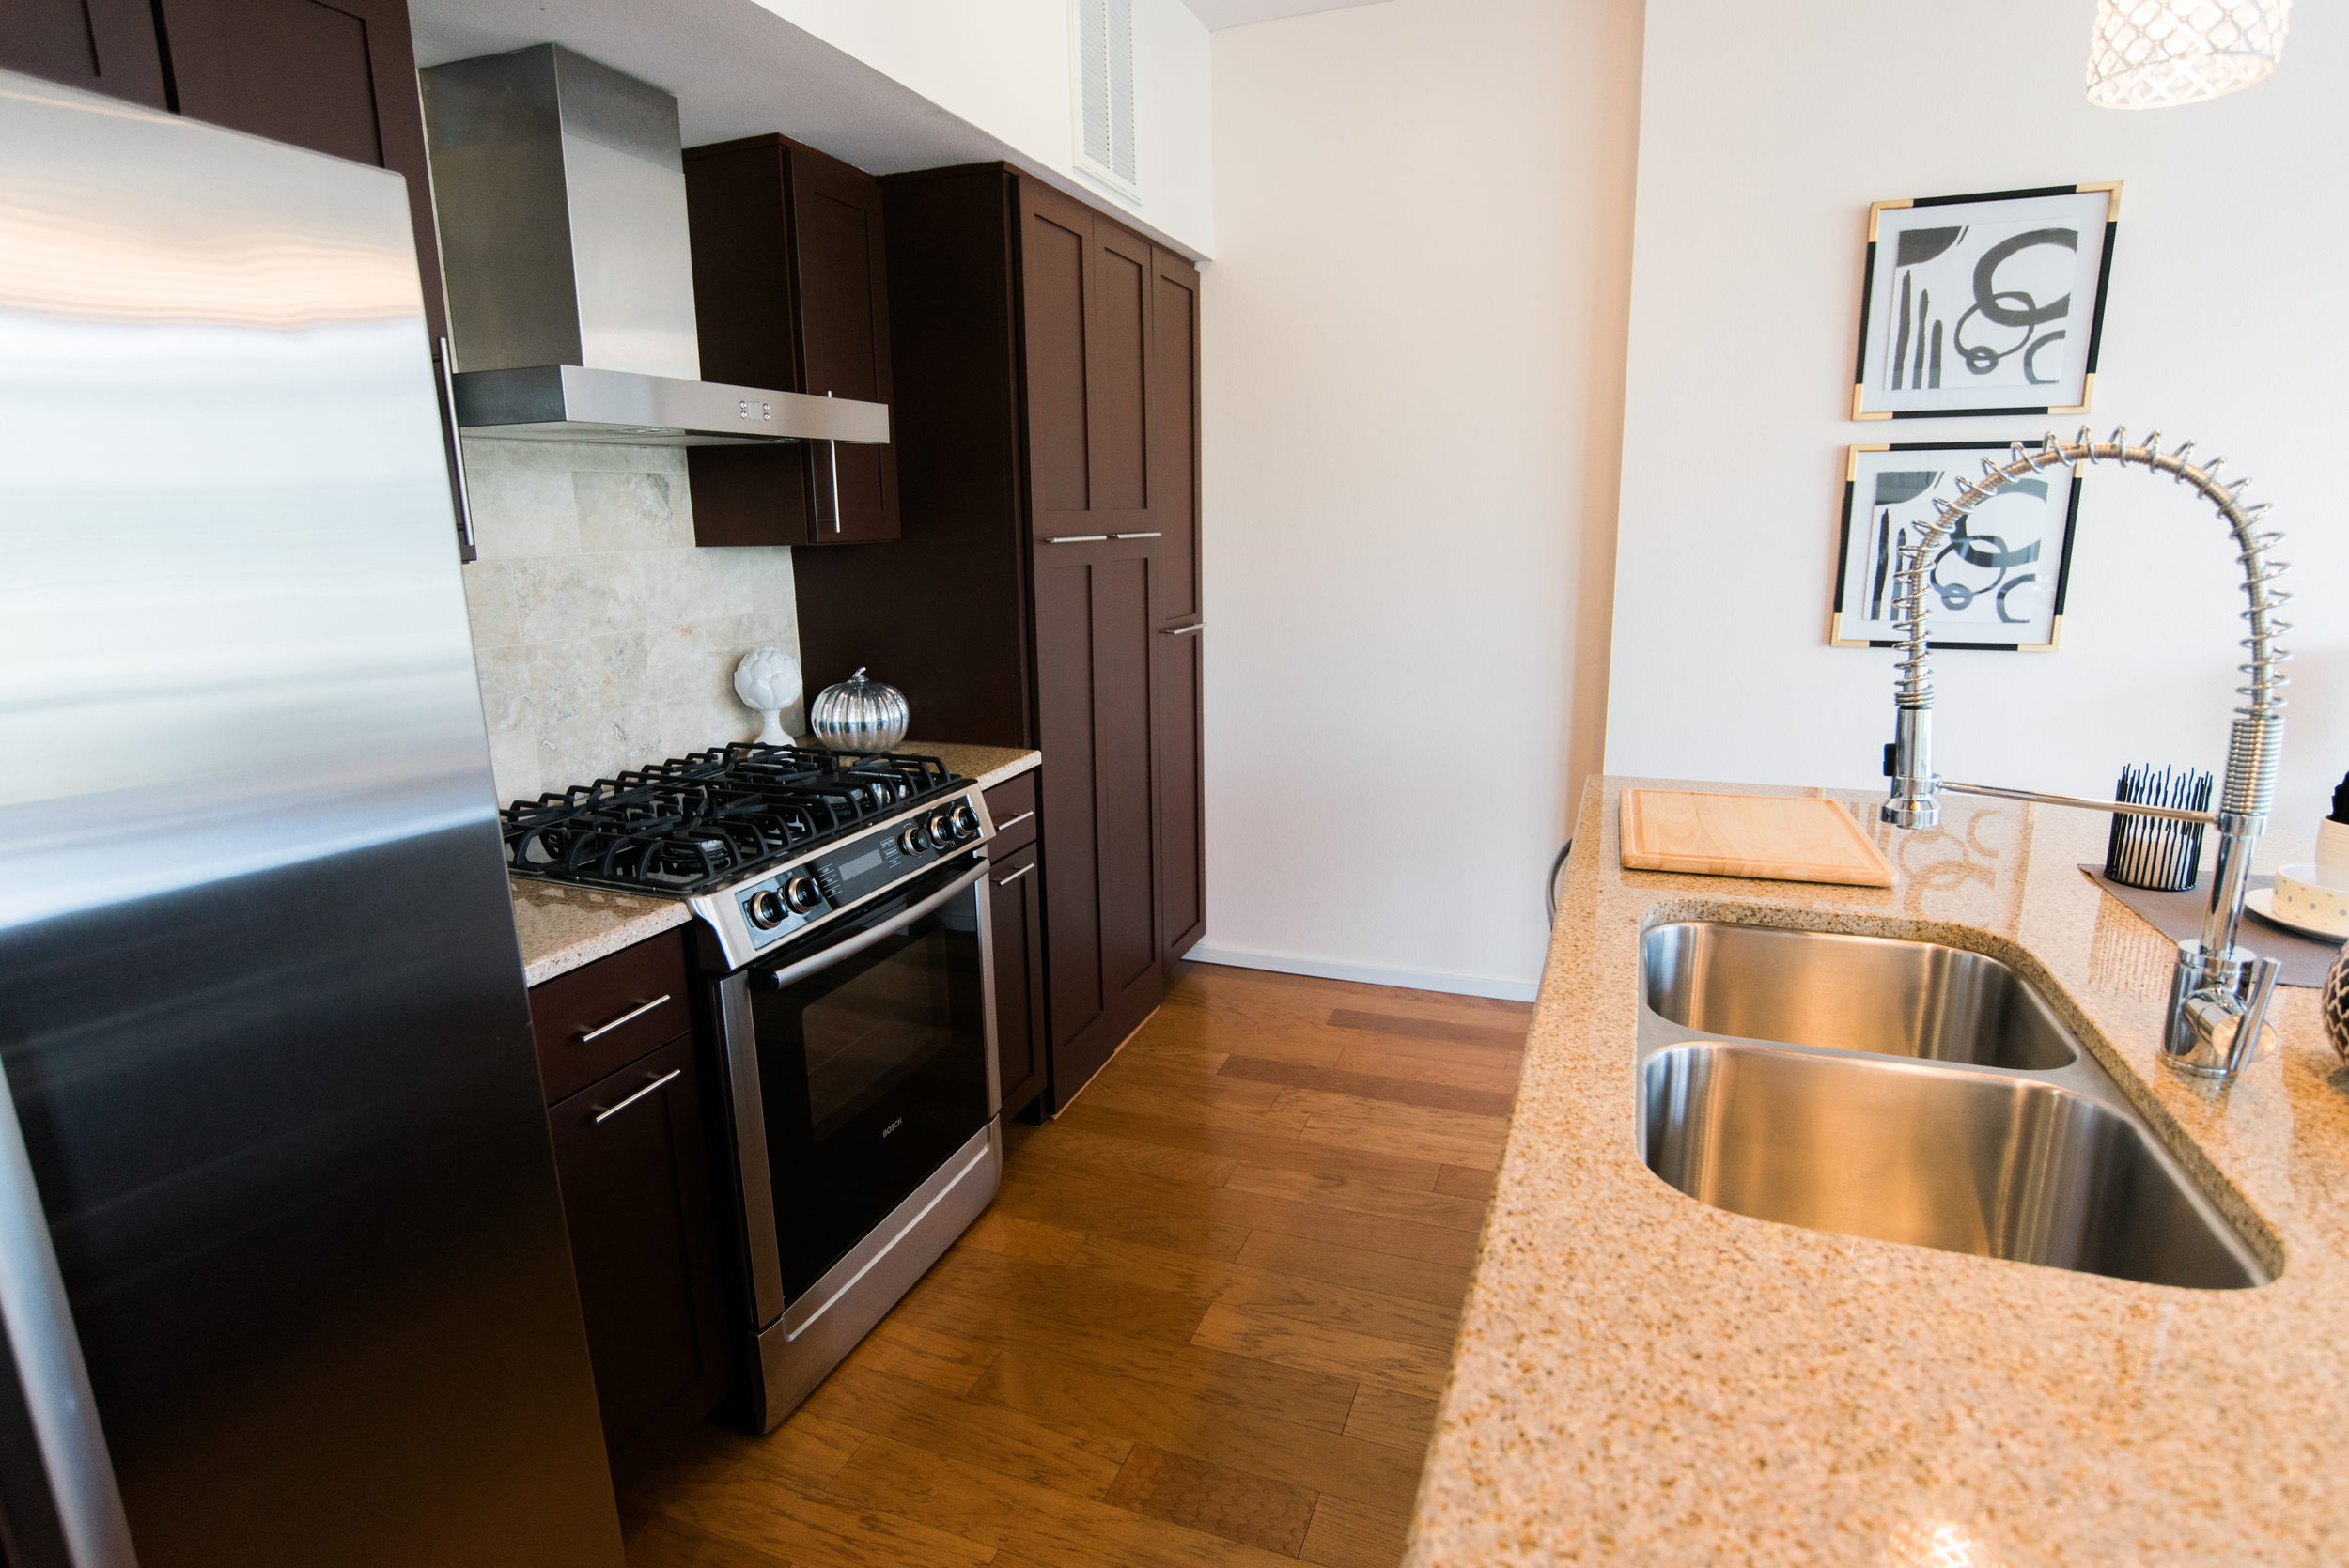 Updated kitchen with gas stove and stainless steel appliances.